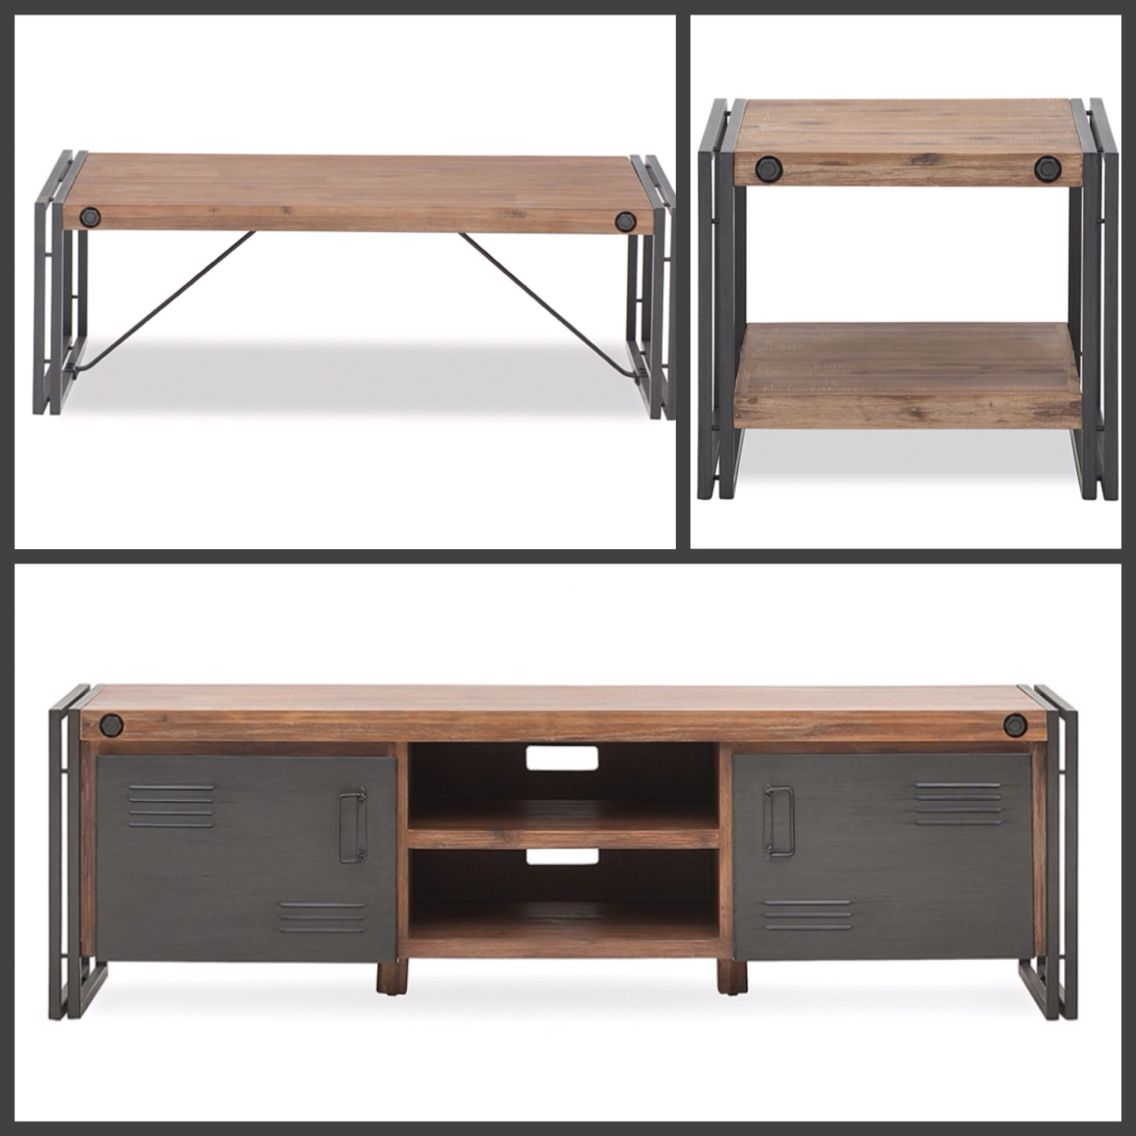 Wall Units Amart Gallery - Simple Design Home - robaxin25.us